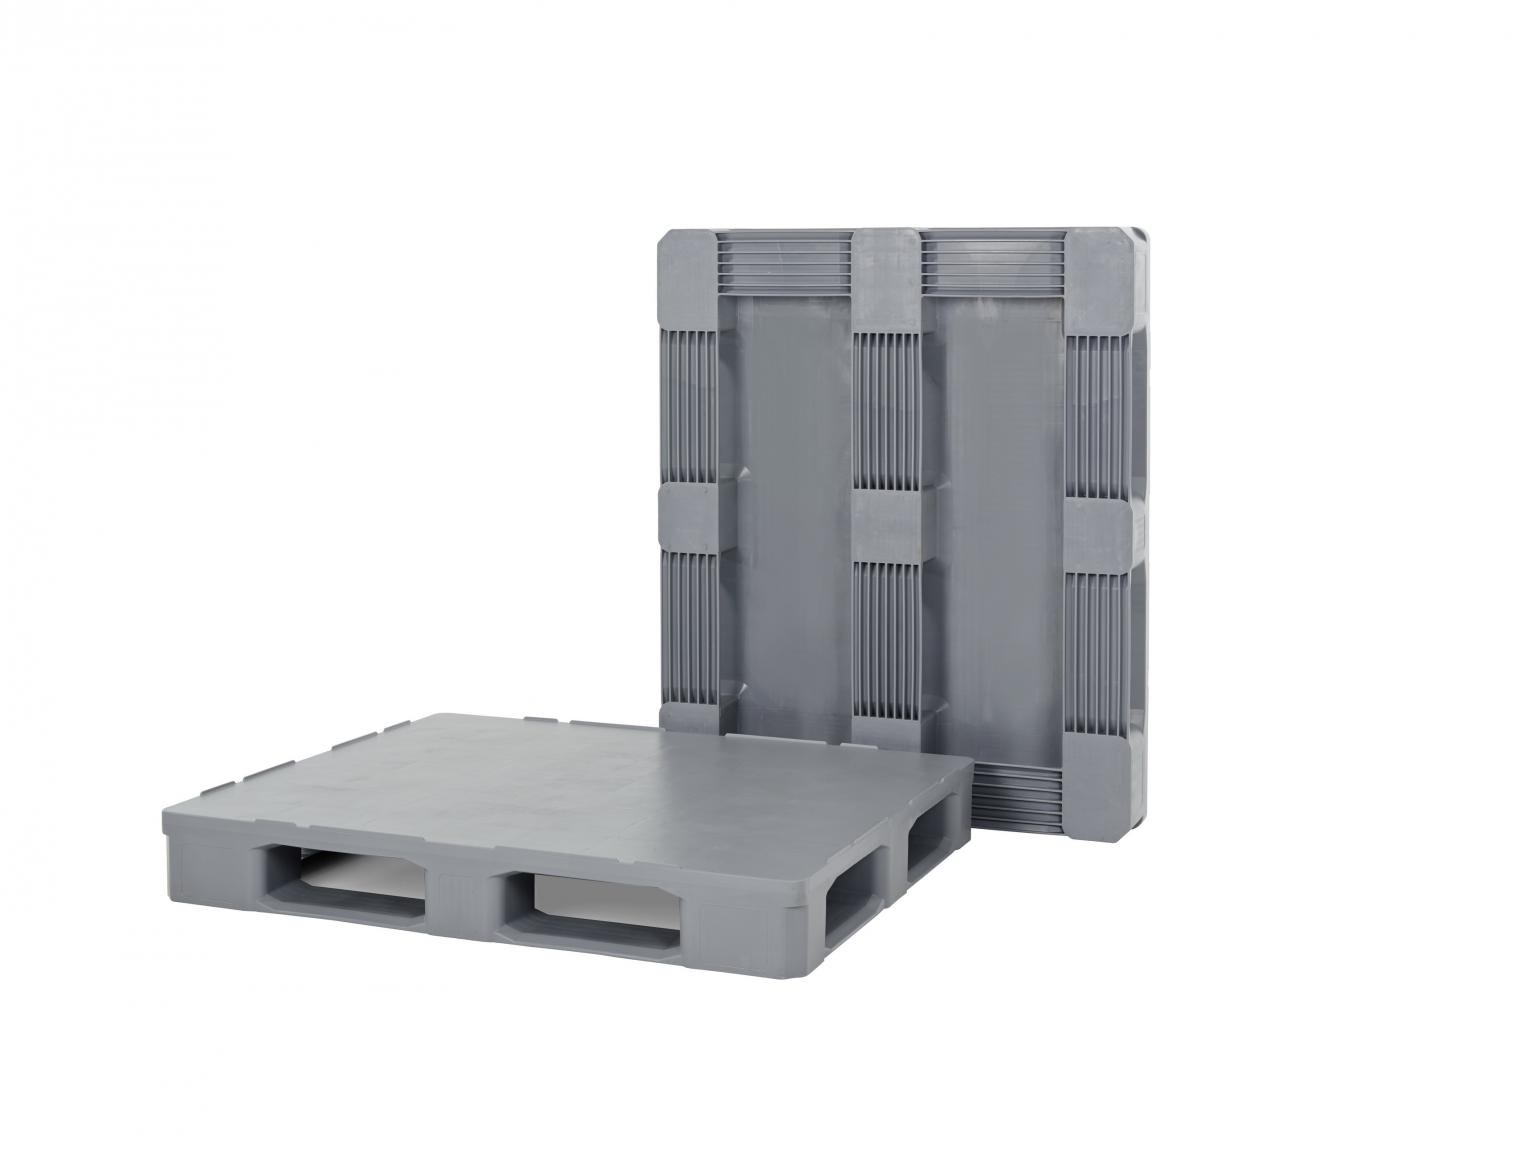 Cabka-IPS' new Hygienic i7.1 is made exclusively of food-grade HDPE plastic. As the pallet does not have any cavities, dirt does not accumulate and it is easy to clean. Image: Cabka-IPS